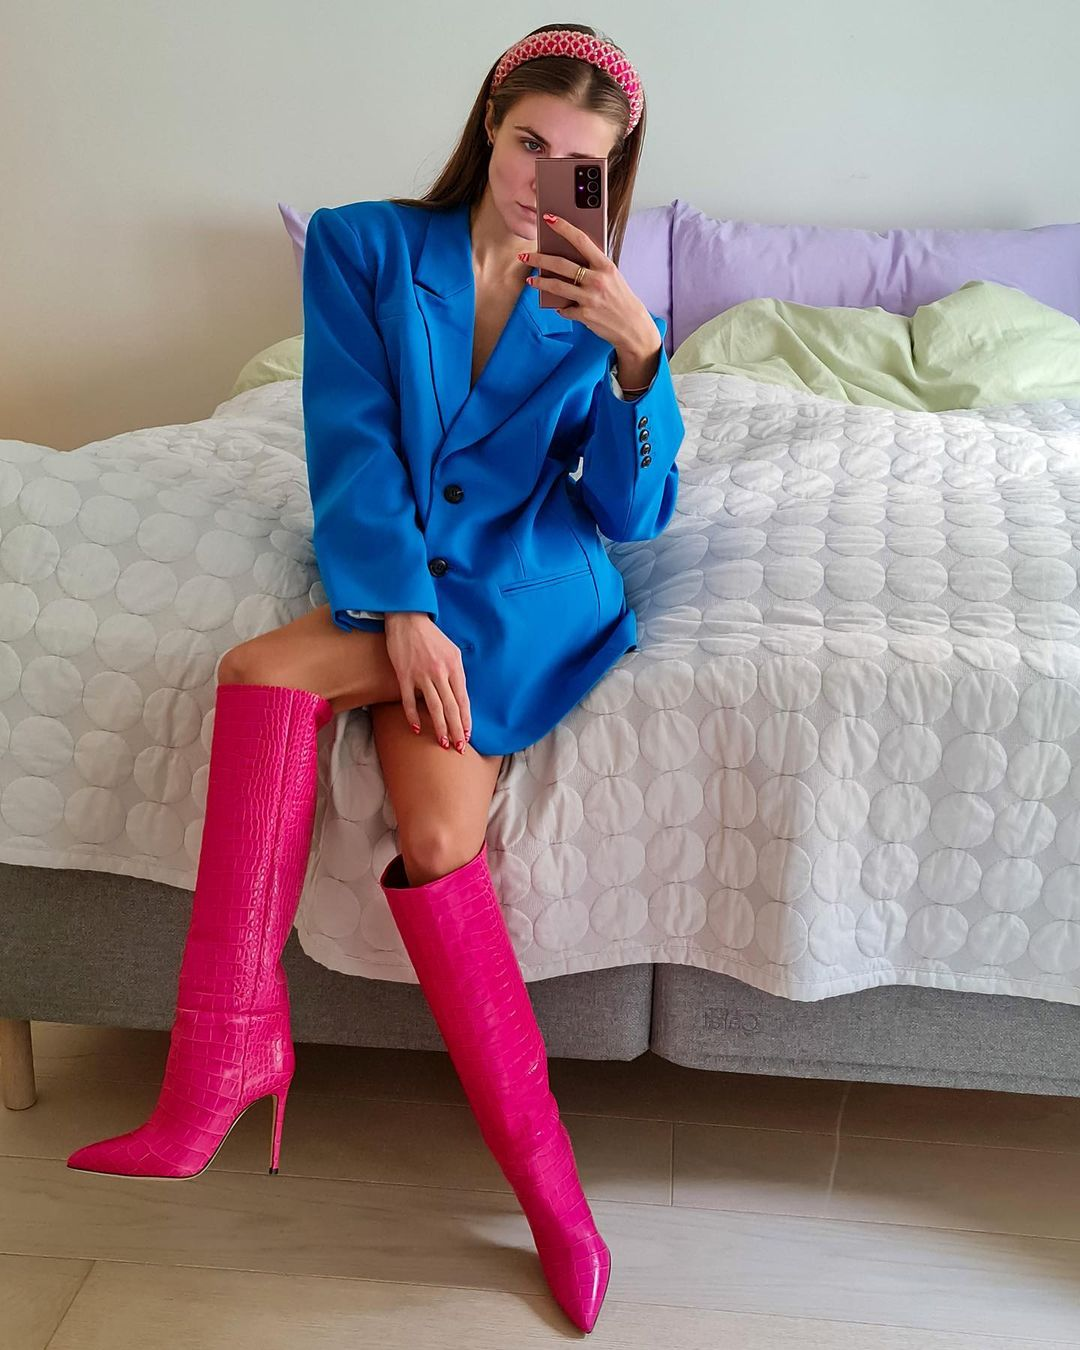 nina-sandbech-paris-texas-croc-embossed-leather-boots-pink-instagram